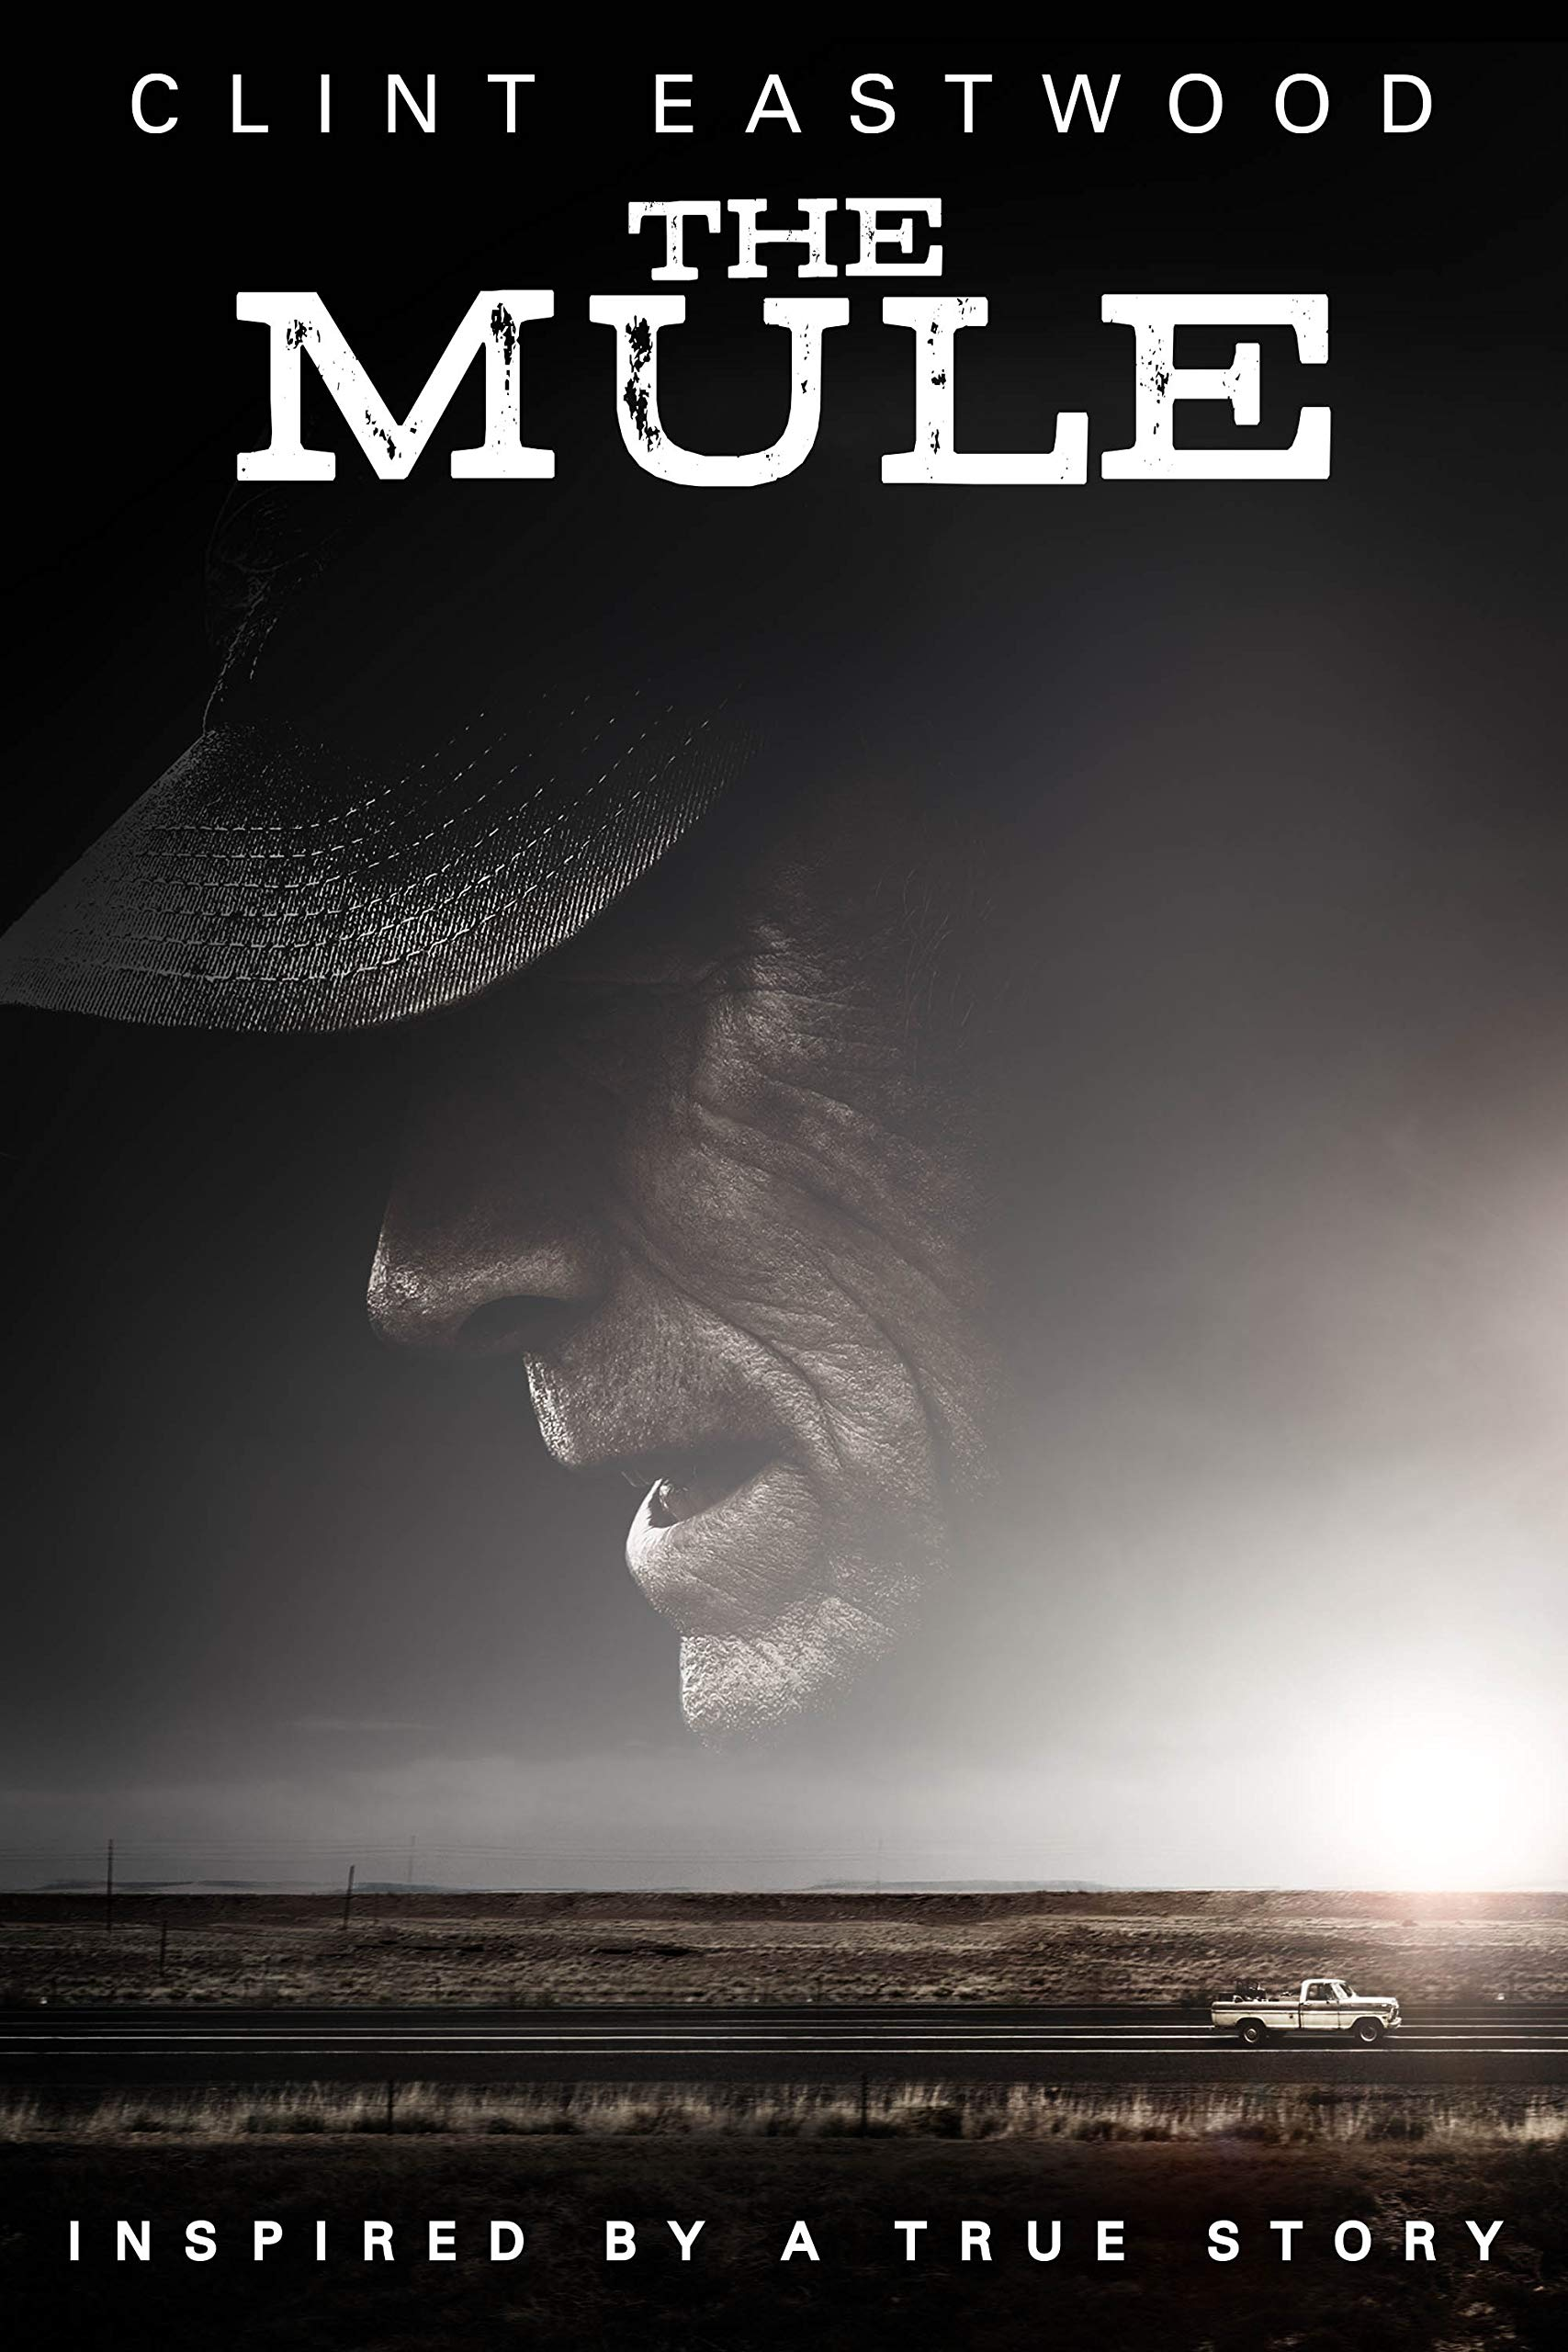 4K Blu-ray : The Mule (With Blu-ray, 4K Mastering, Digital Copy, 2 Pack)